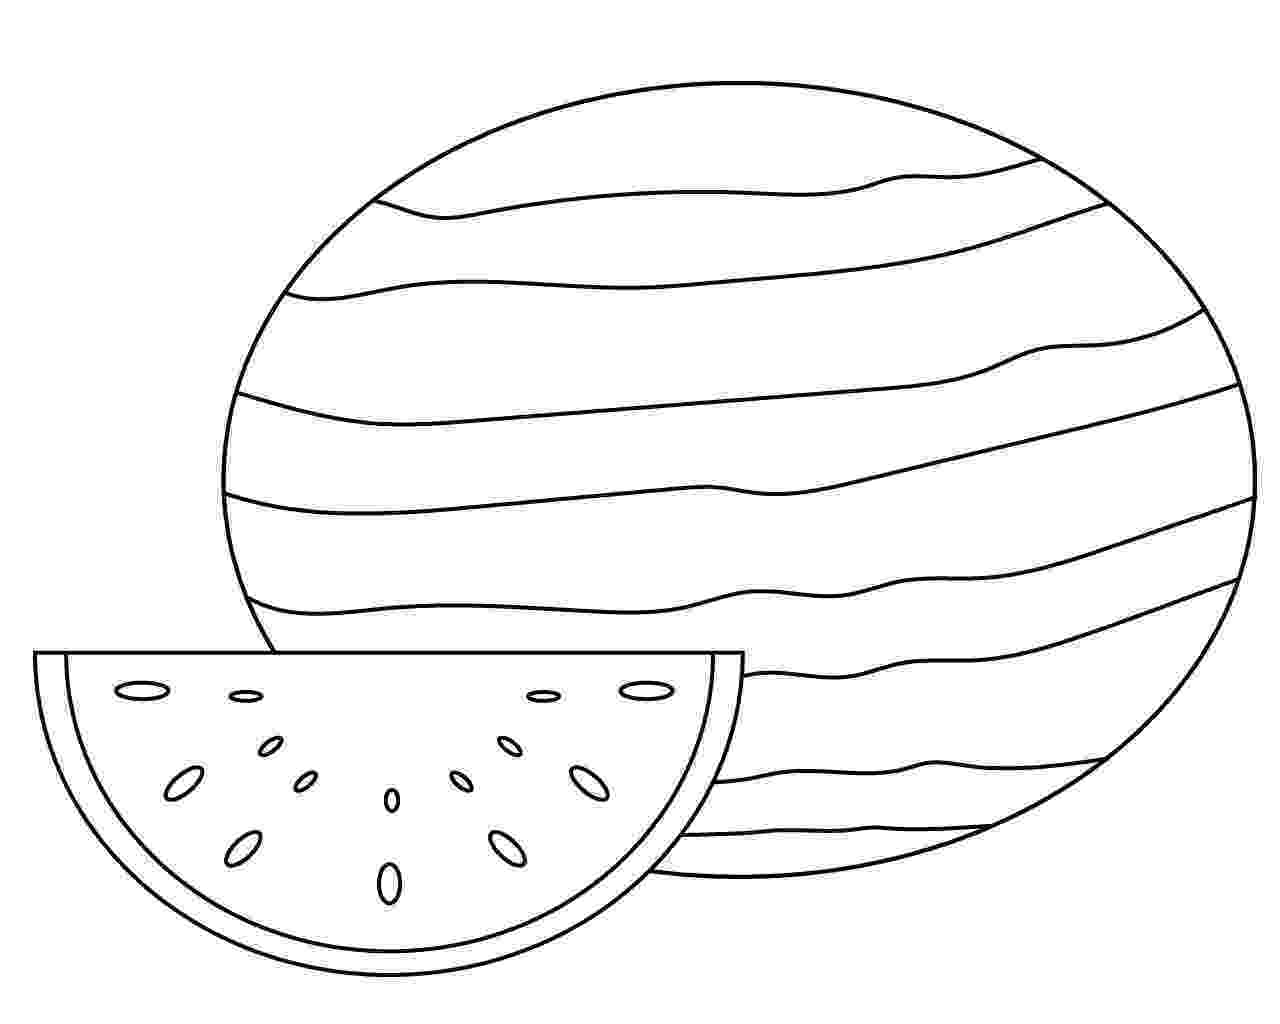 watermelon coloring sheets top 10 watermelon coloring pages your toddler will love coloring watermelon sheets